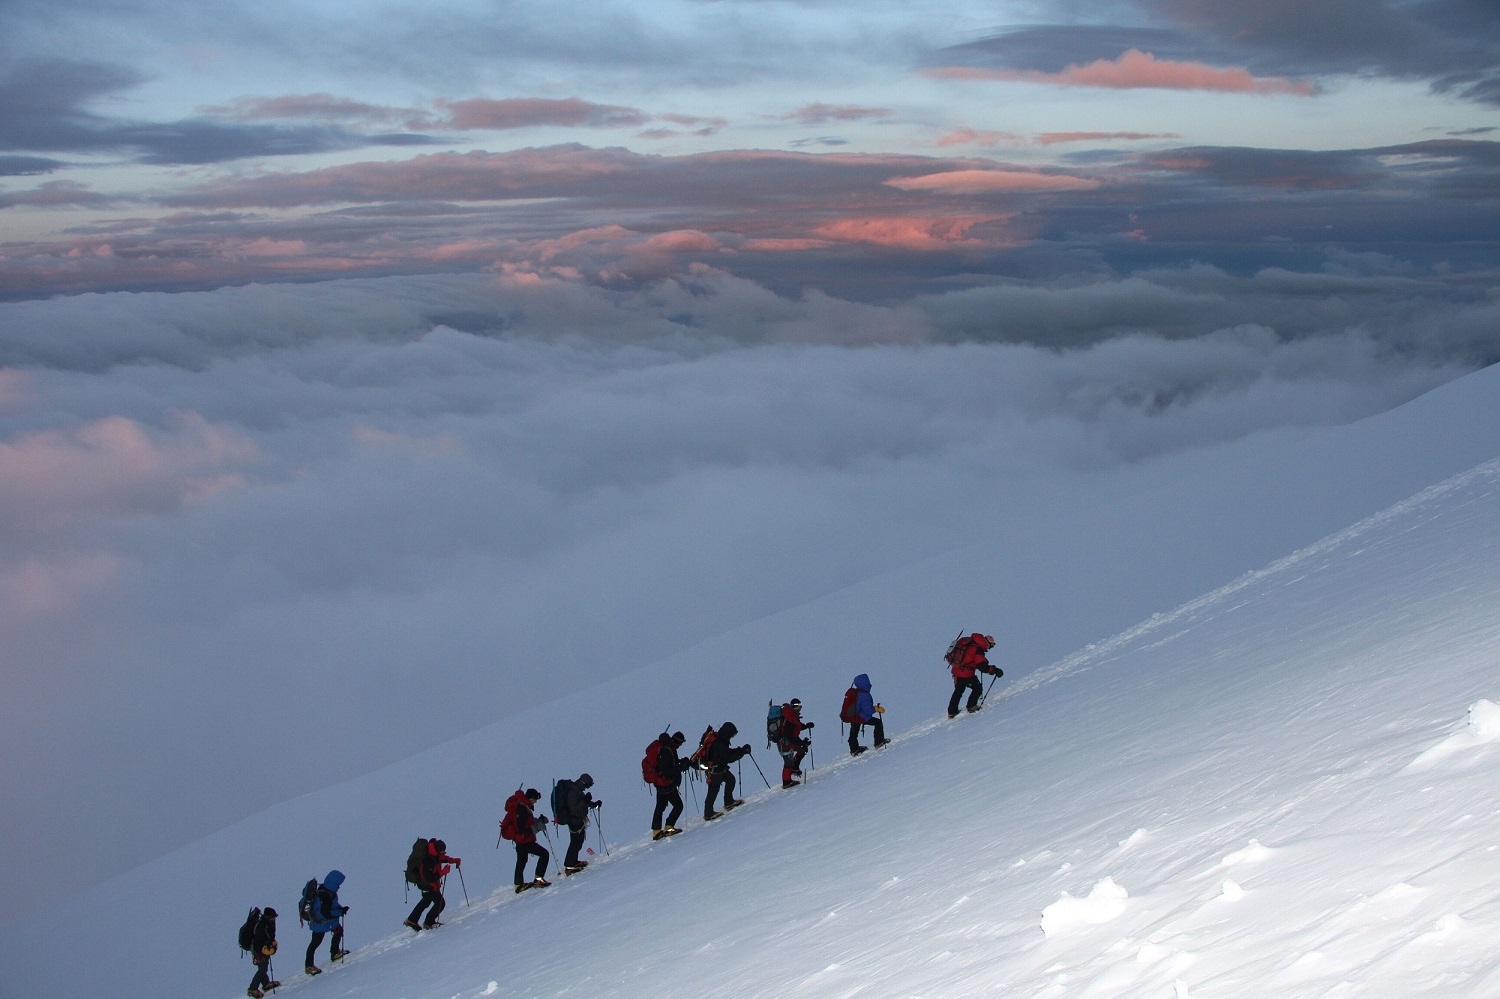 Summiting Mt Elbrus